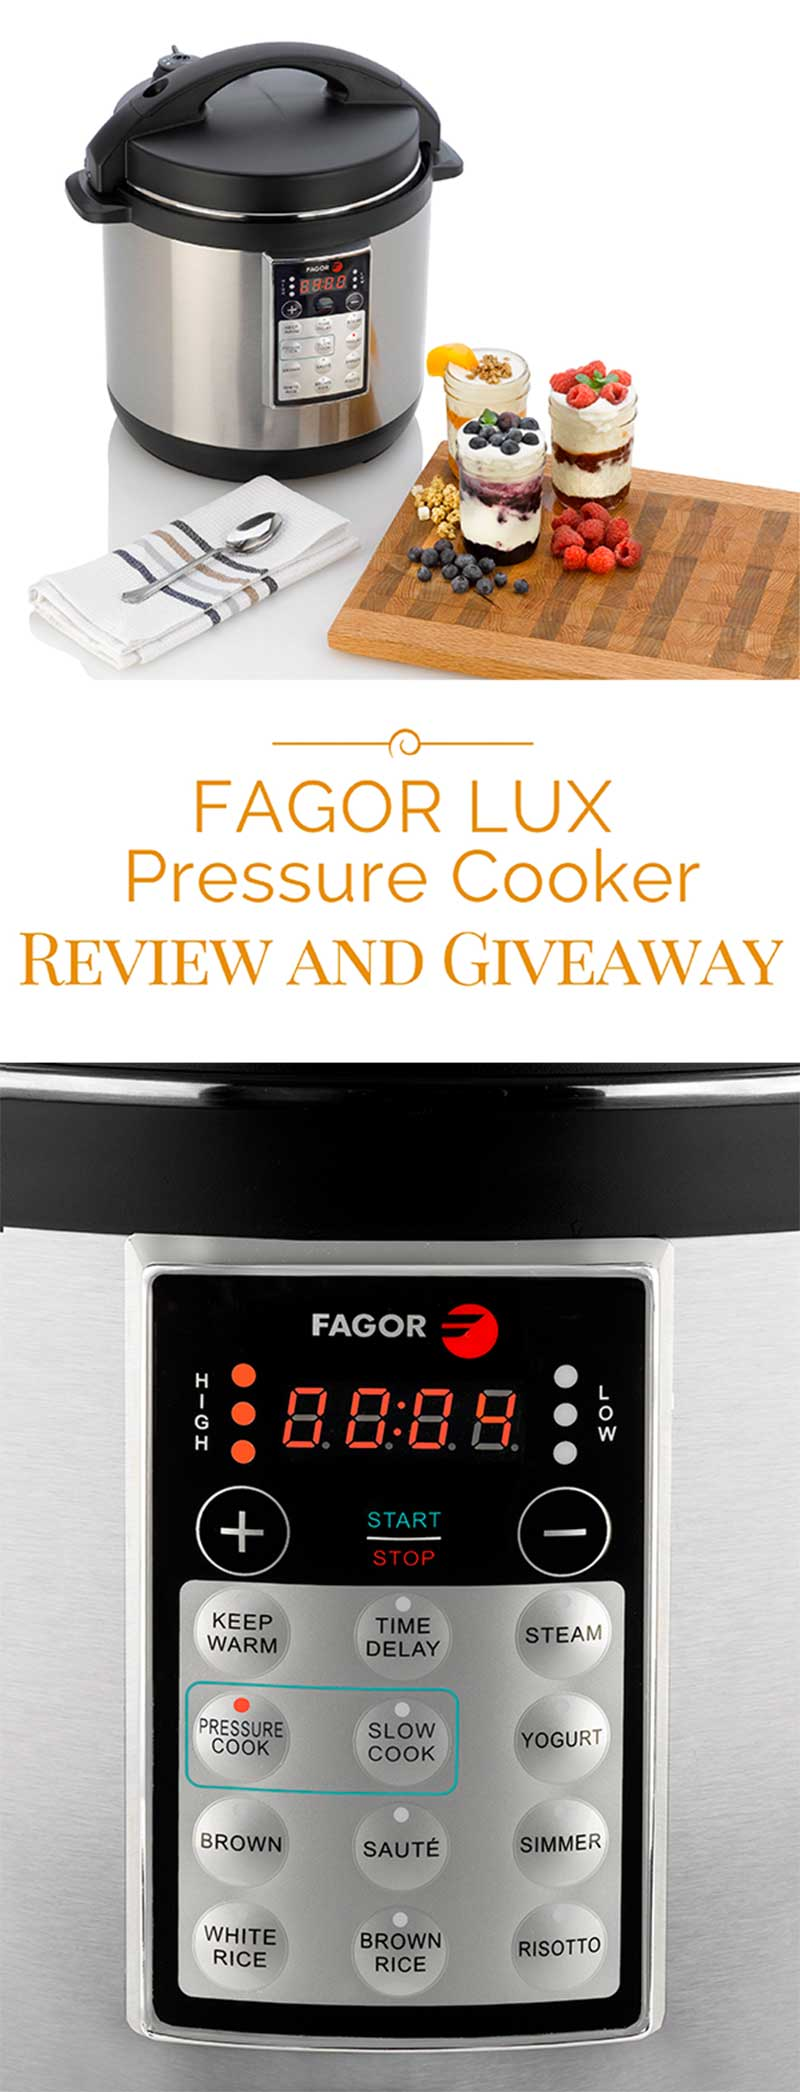 Top Rated Fagor LUX 8 Quart Multi-Cooker